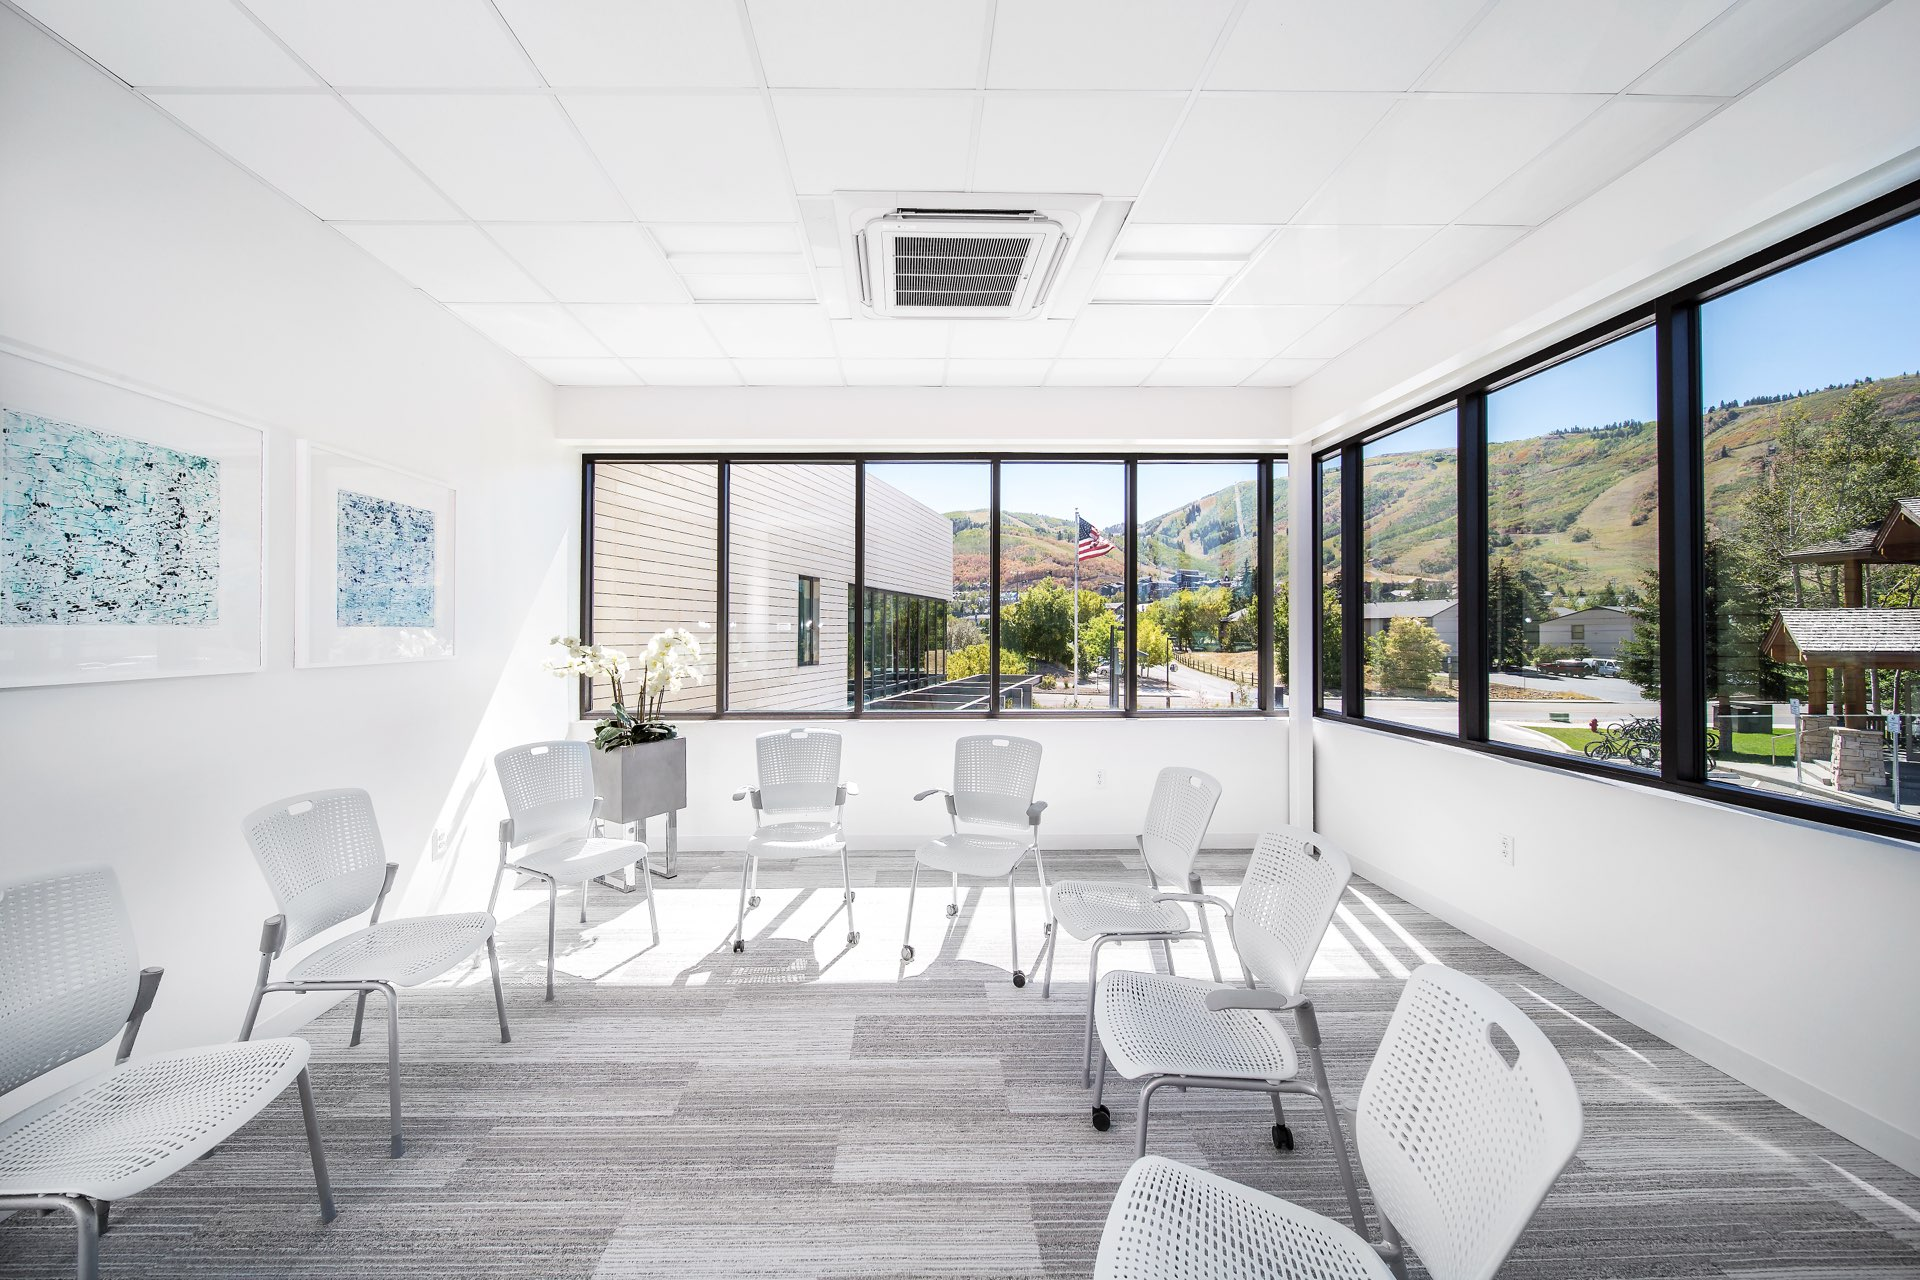 Meeting room, Christian Center of Park City, architectural design by Elliott Workgroup